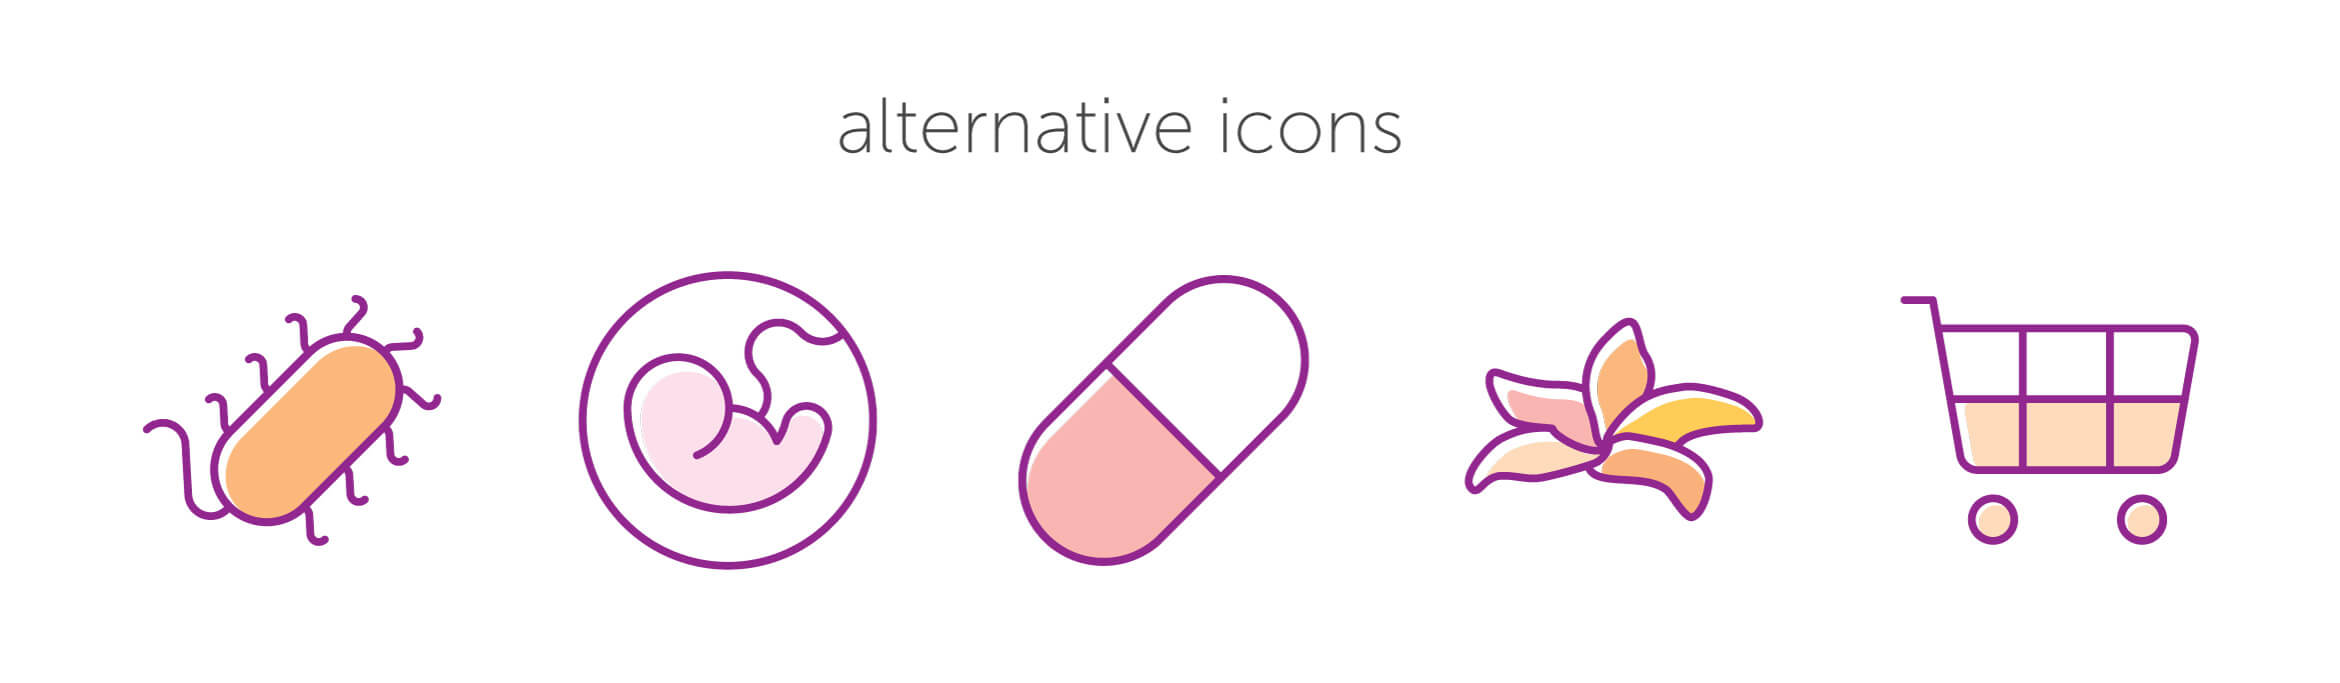 Alternative Icons für Feminella® Vagi C®.